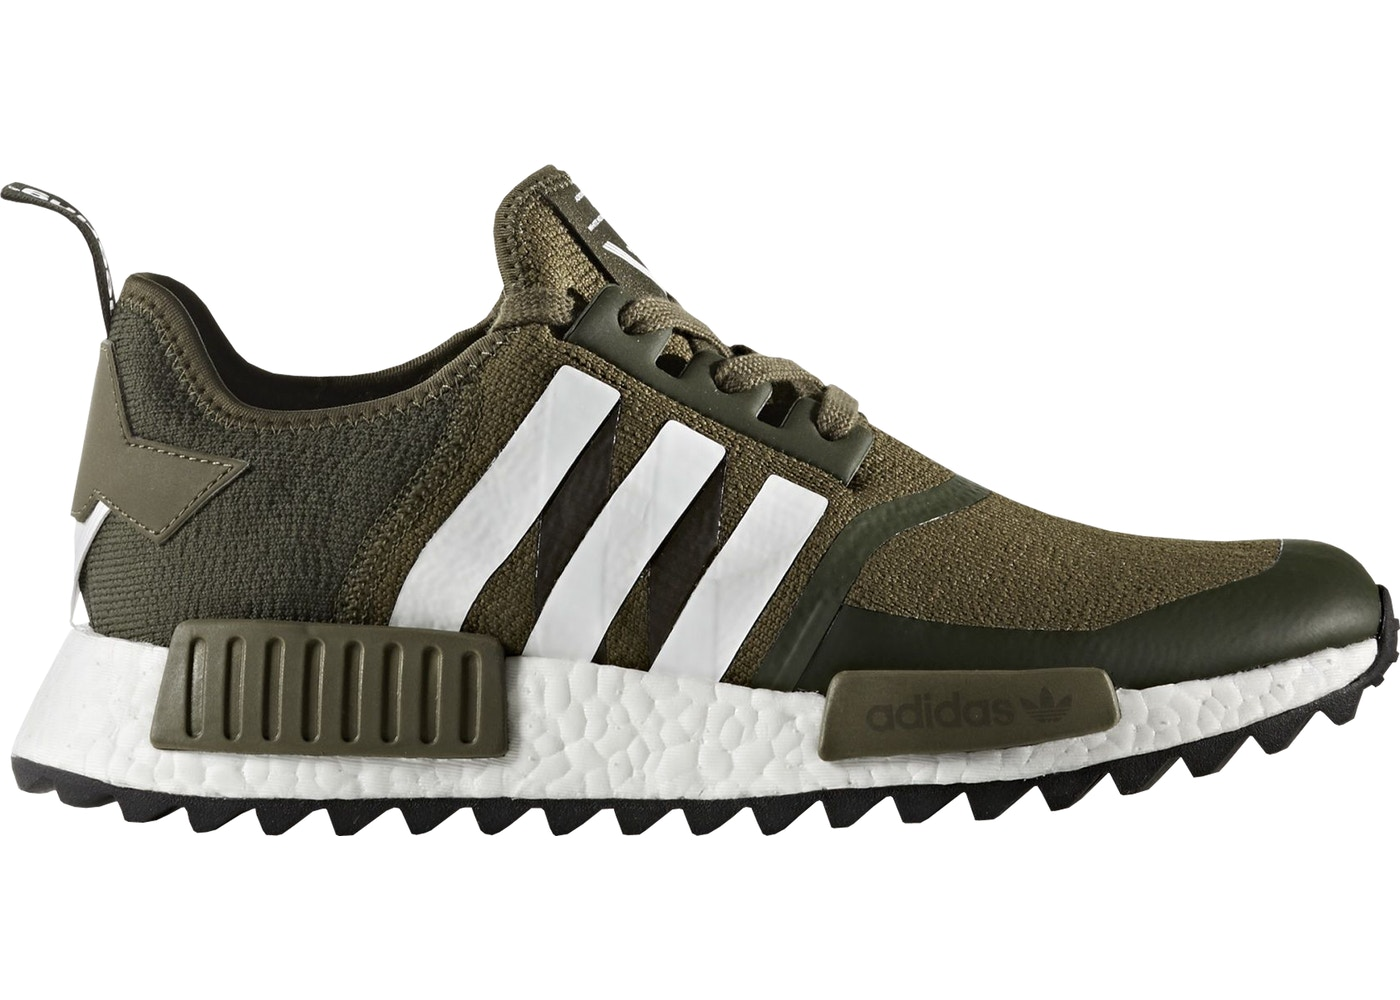 Trail Trace White Mountaineering Olive Adidas Nmd R1 roeWCxBd